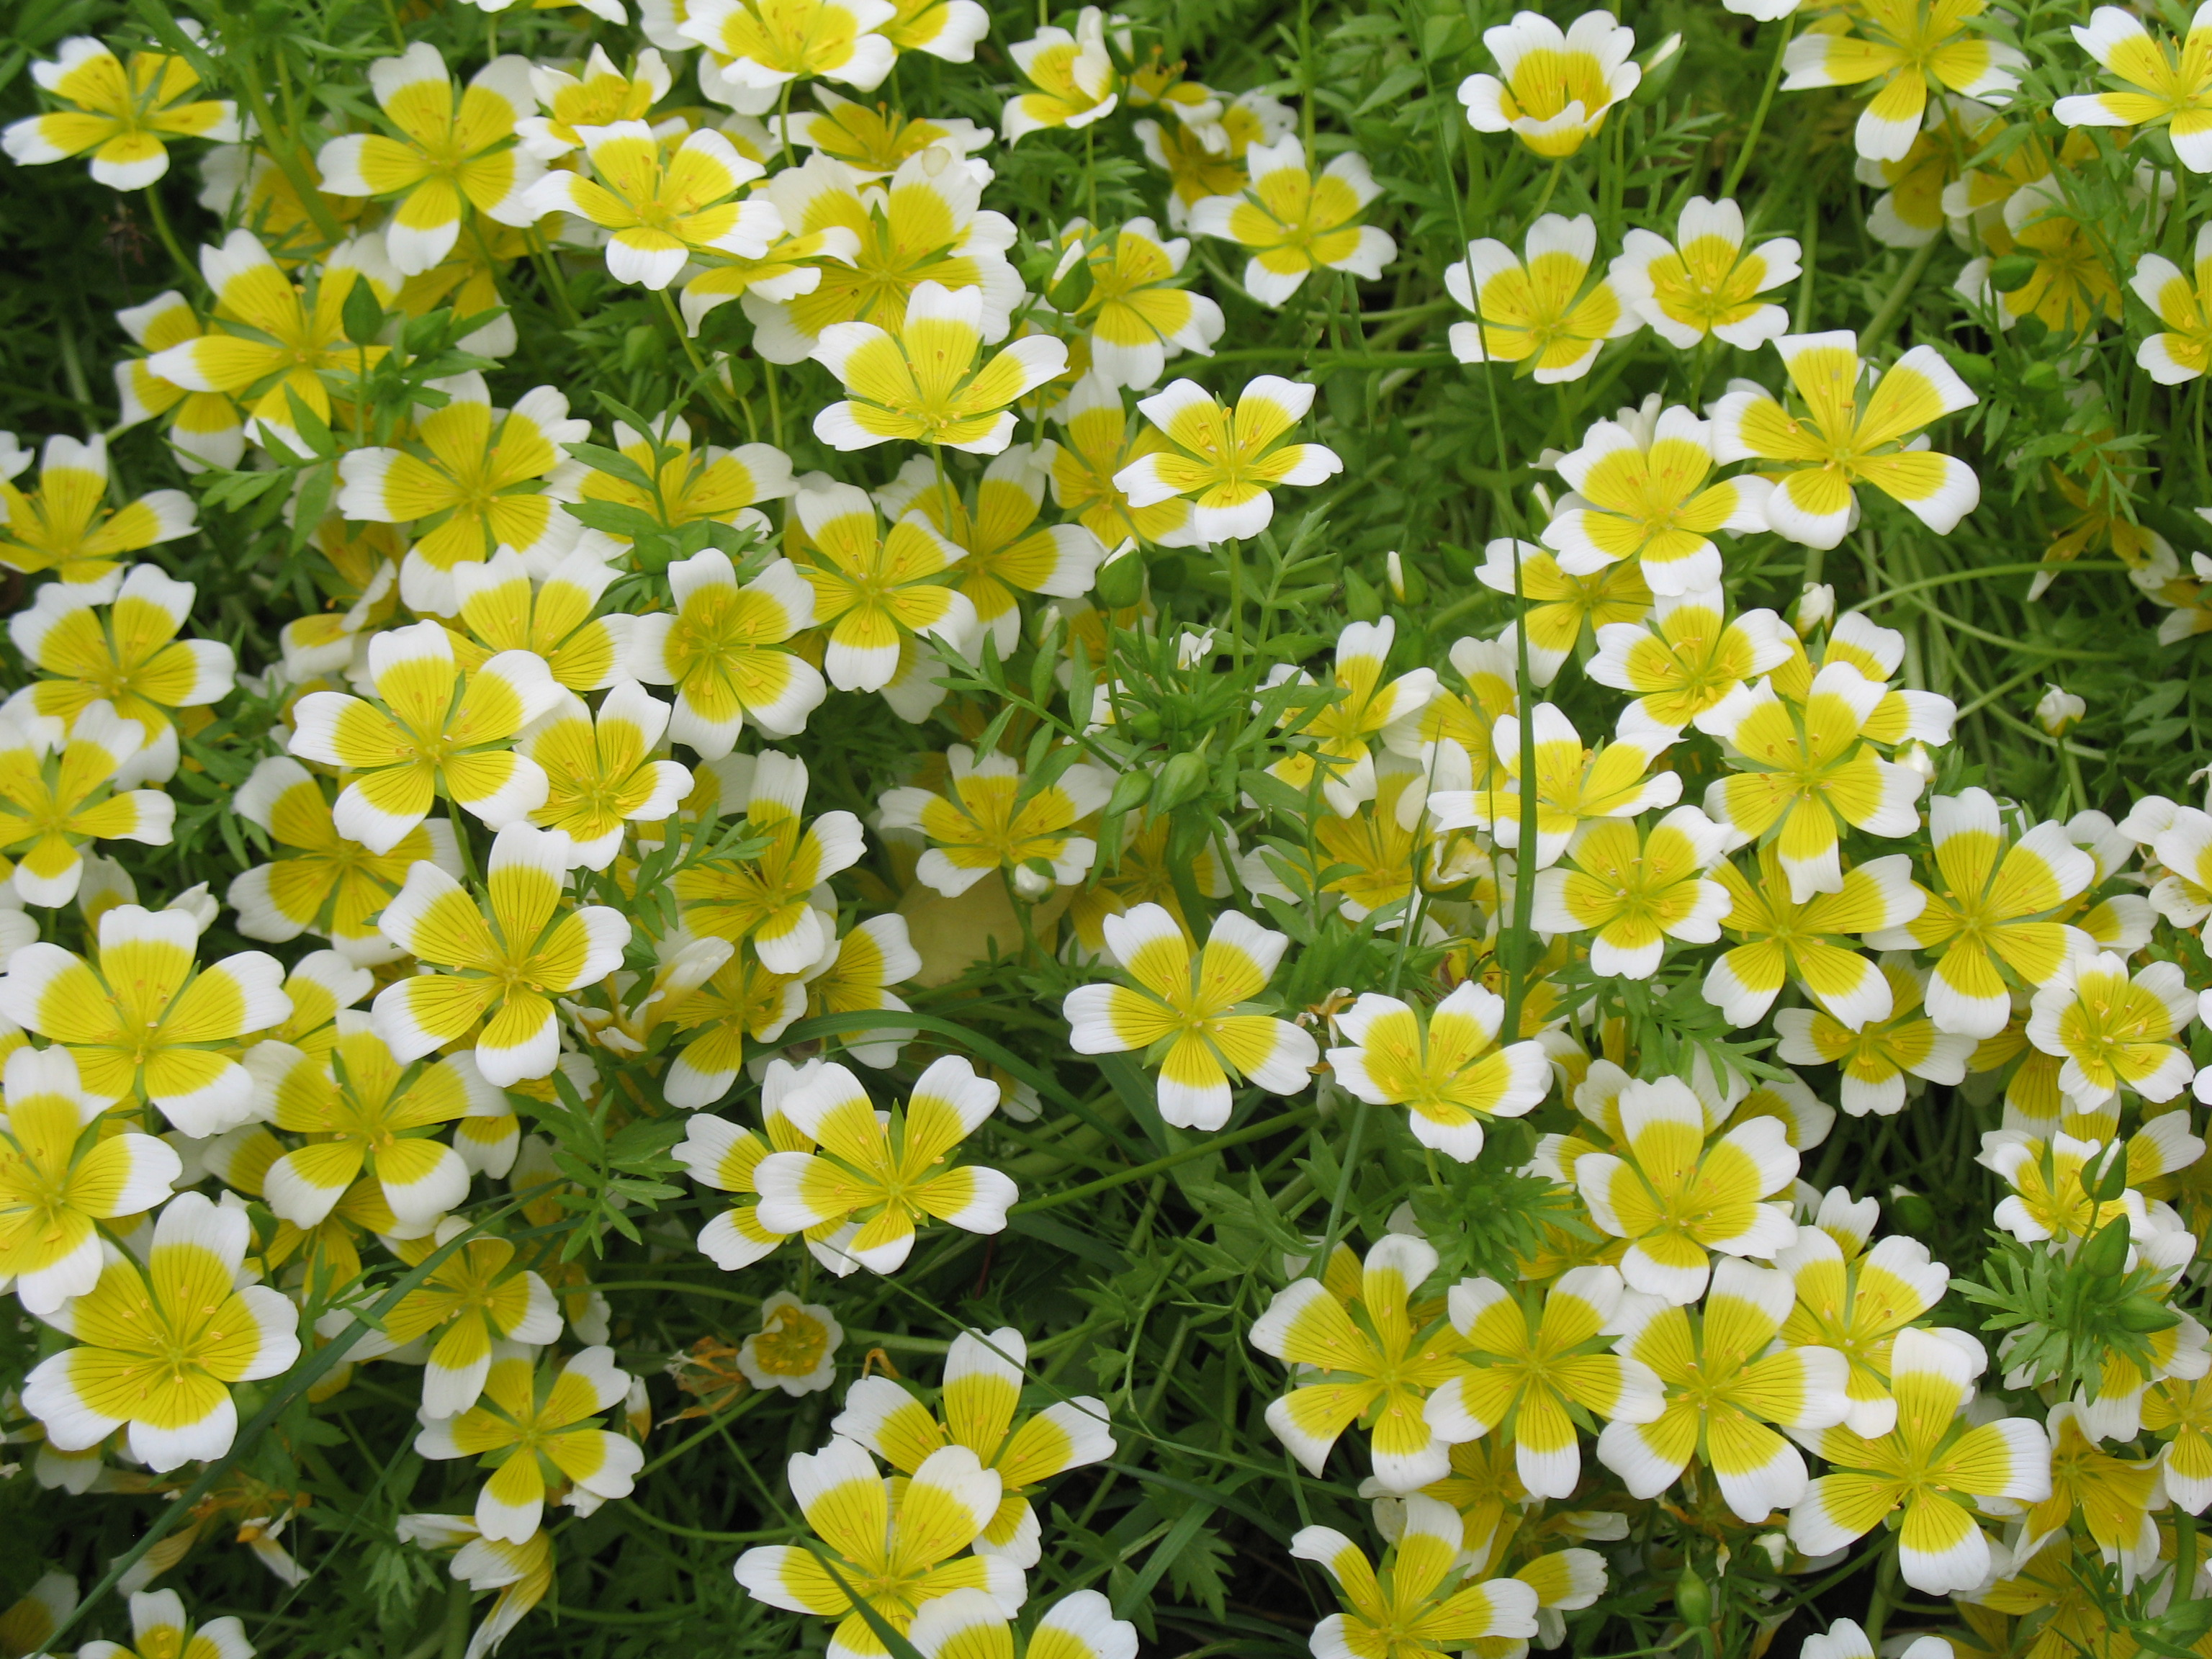 Limnanthes douglasii / Limnanthes douglasii